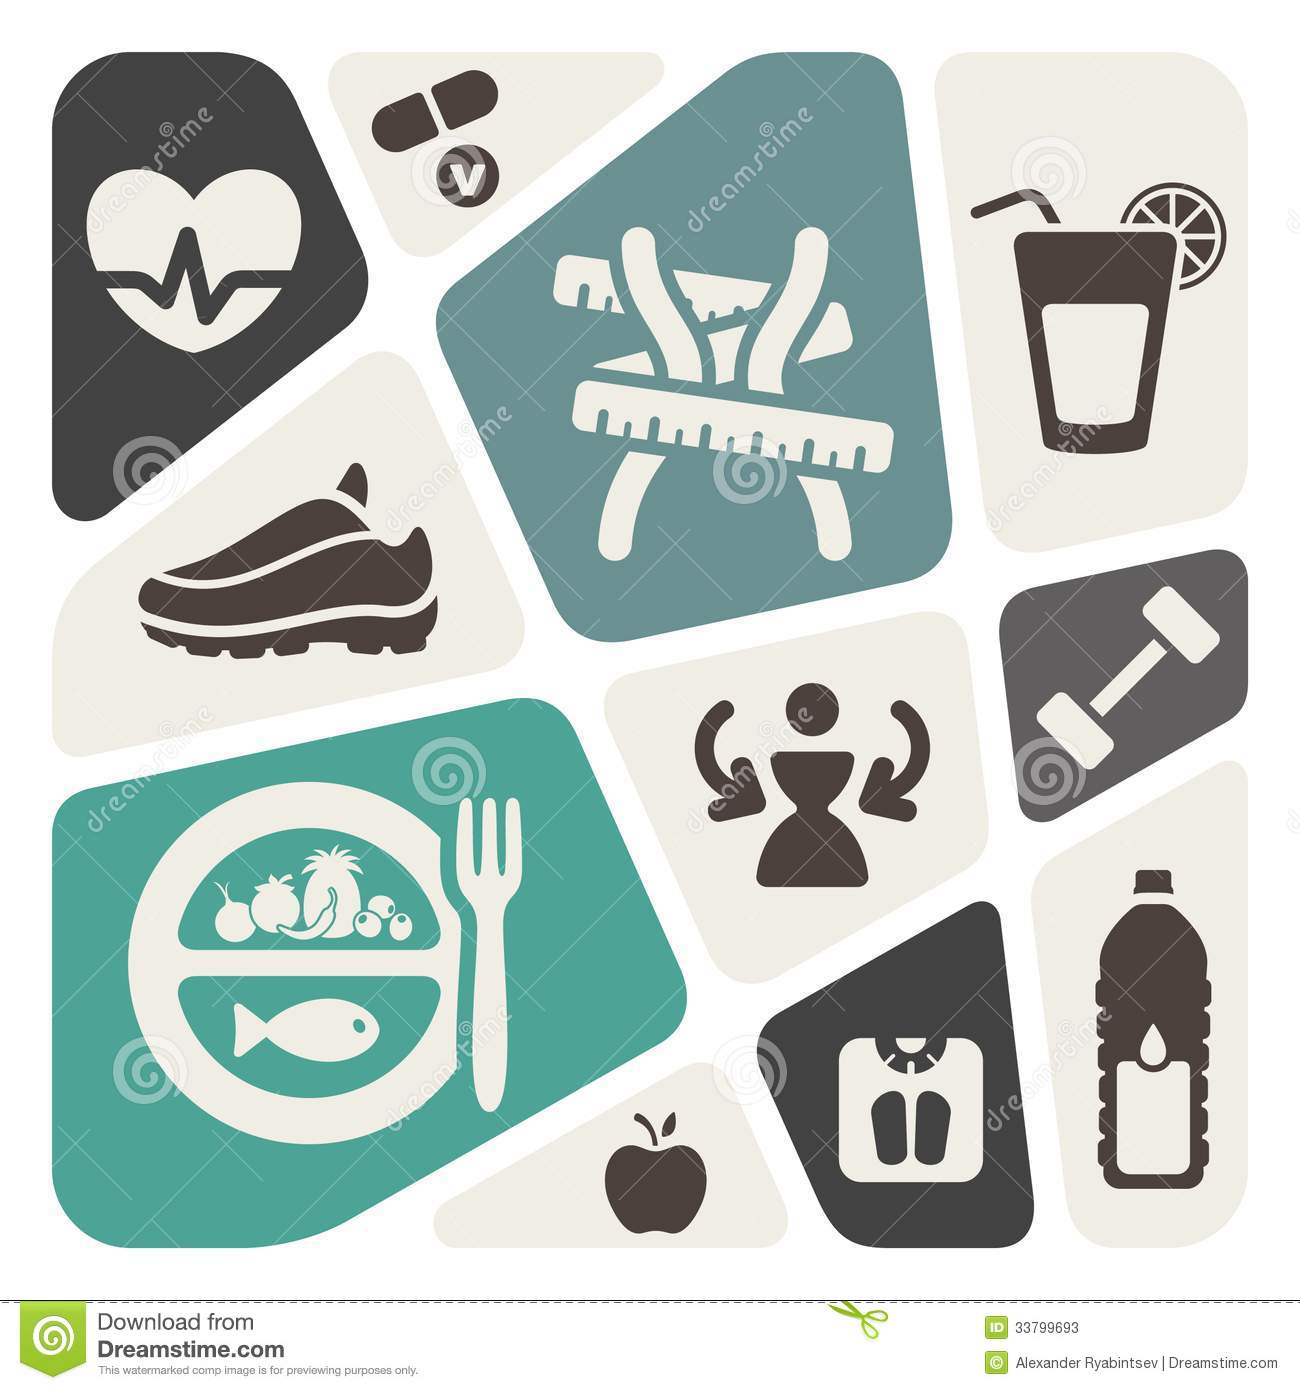 Want to lose weight, which is more important for fitness and diet?